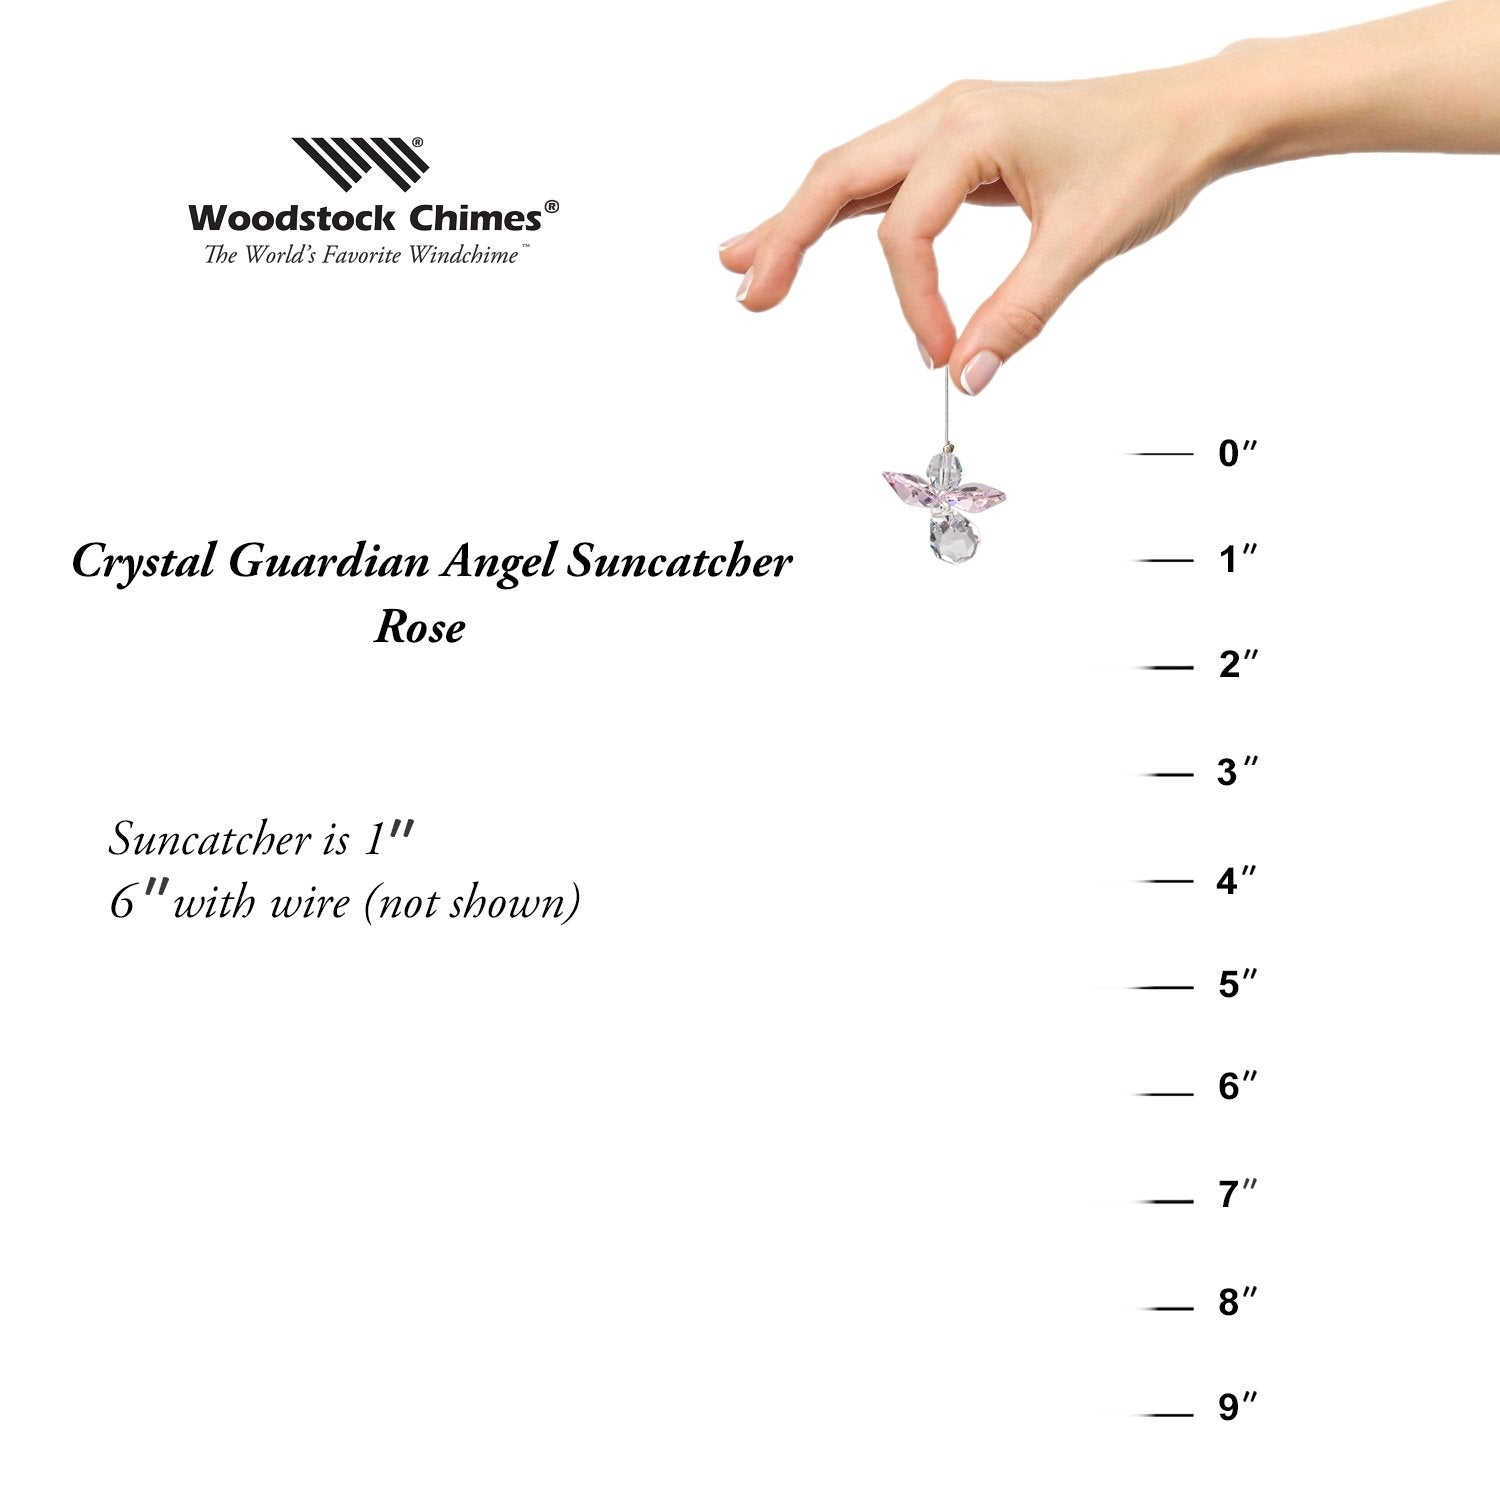 Crystal Guardian Angel Suncatcher - Rose (October) proportion image